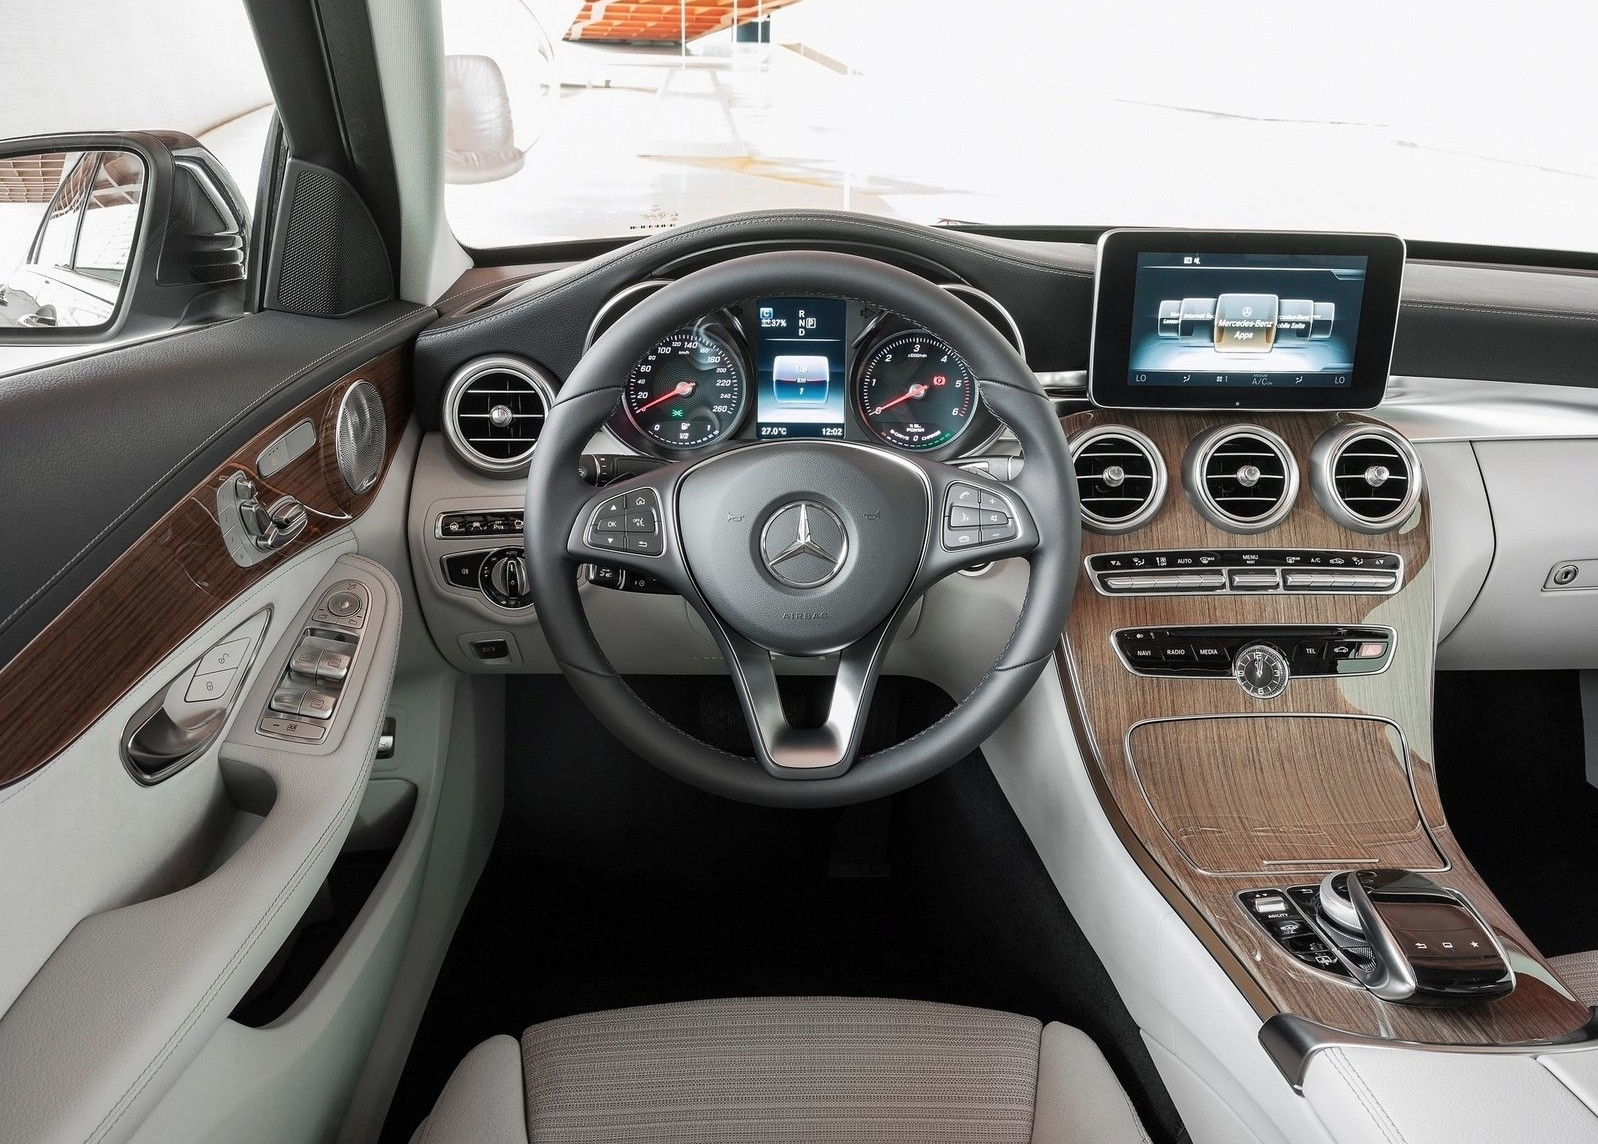 2018 Mercedes C Class Facelift Interior Spyshots S Class Digital Dashboard Could Bow In C